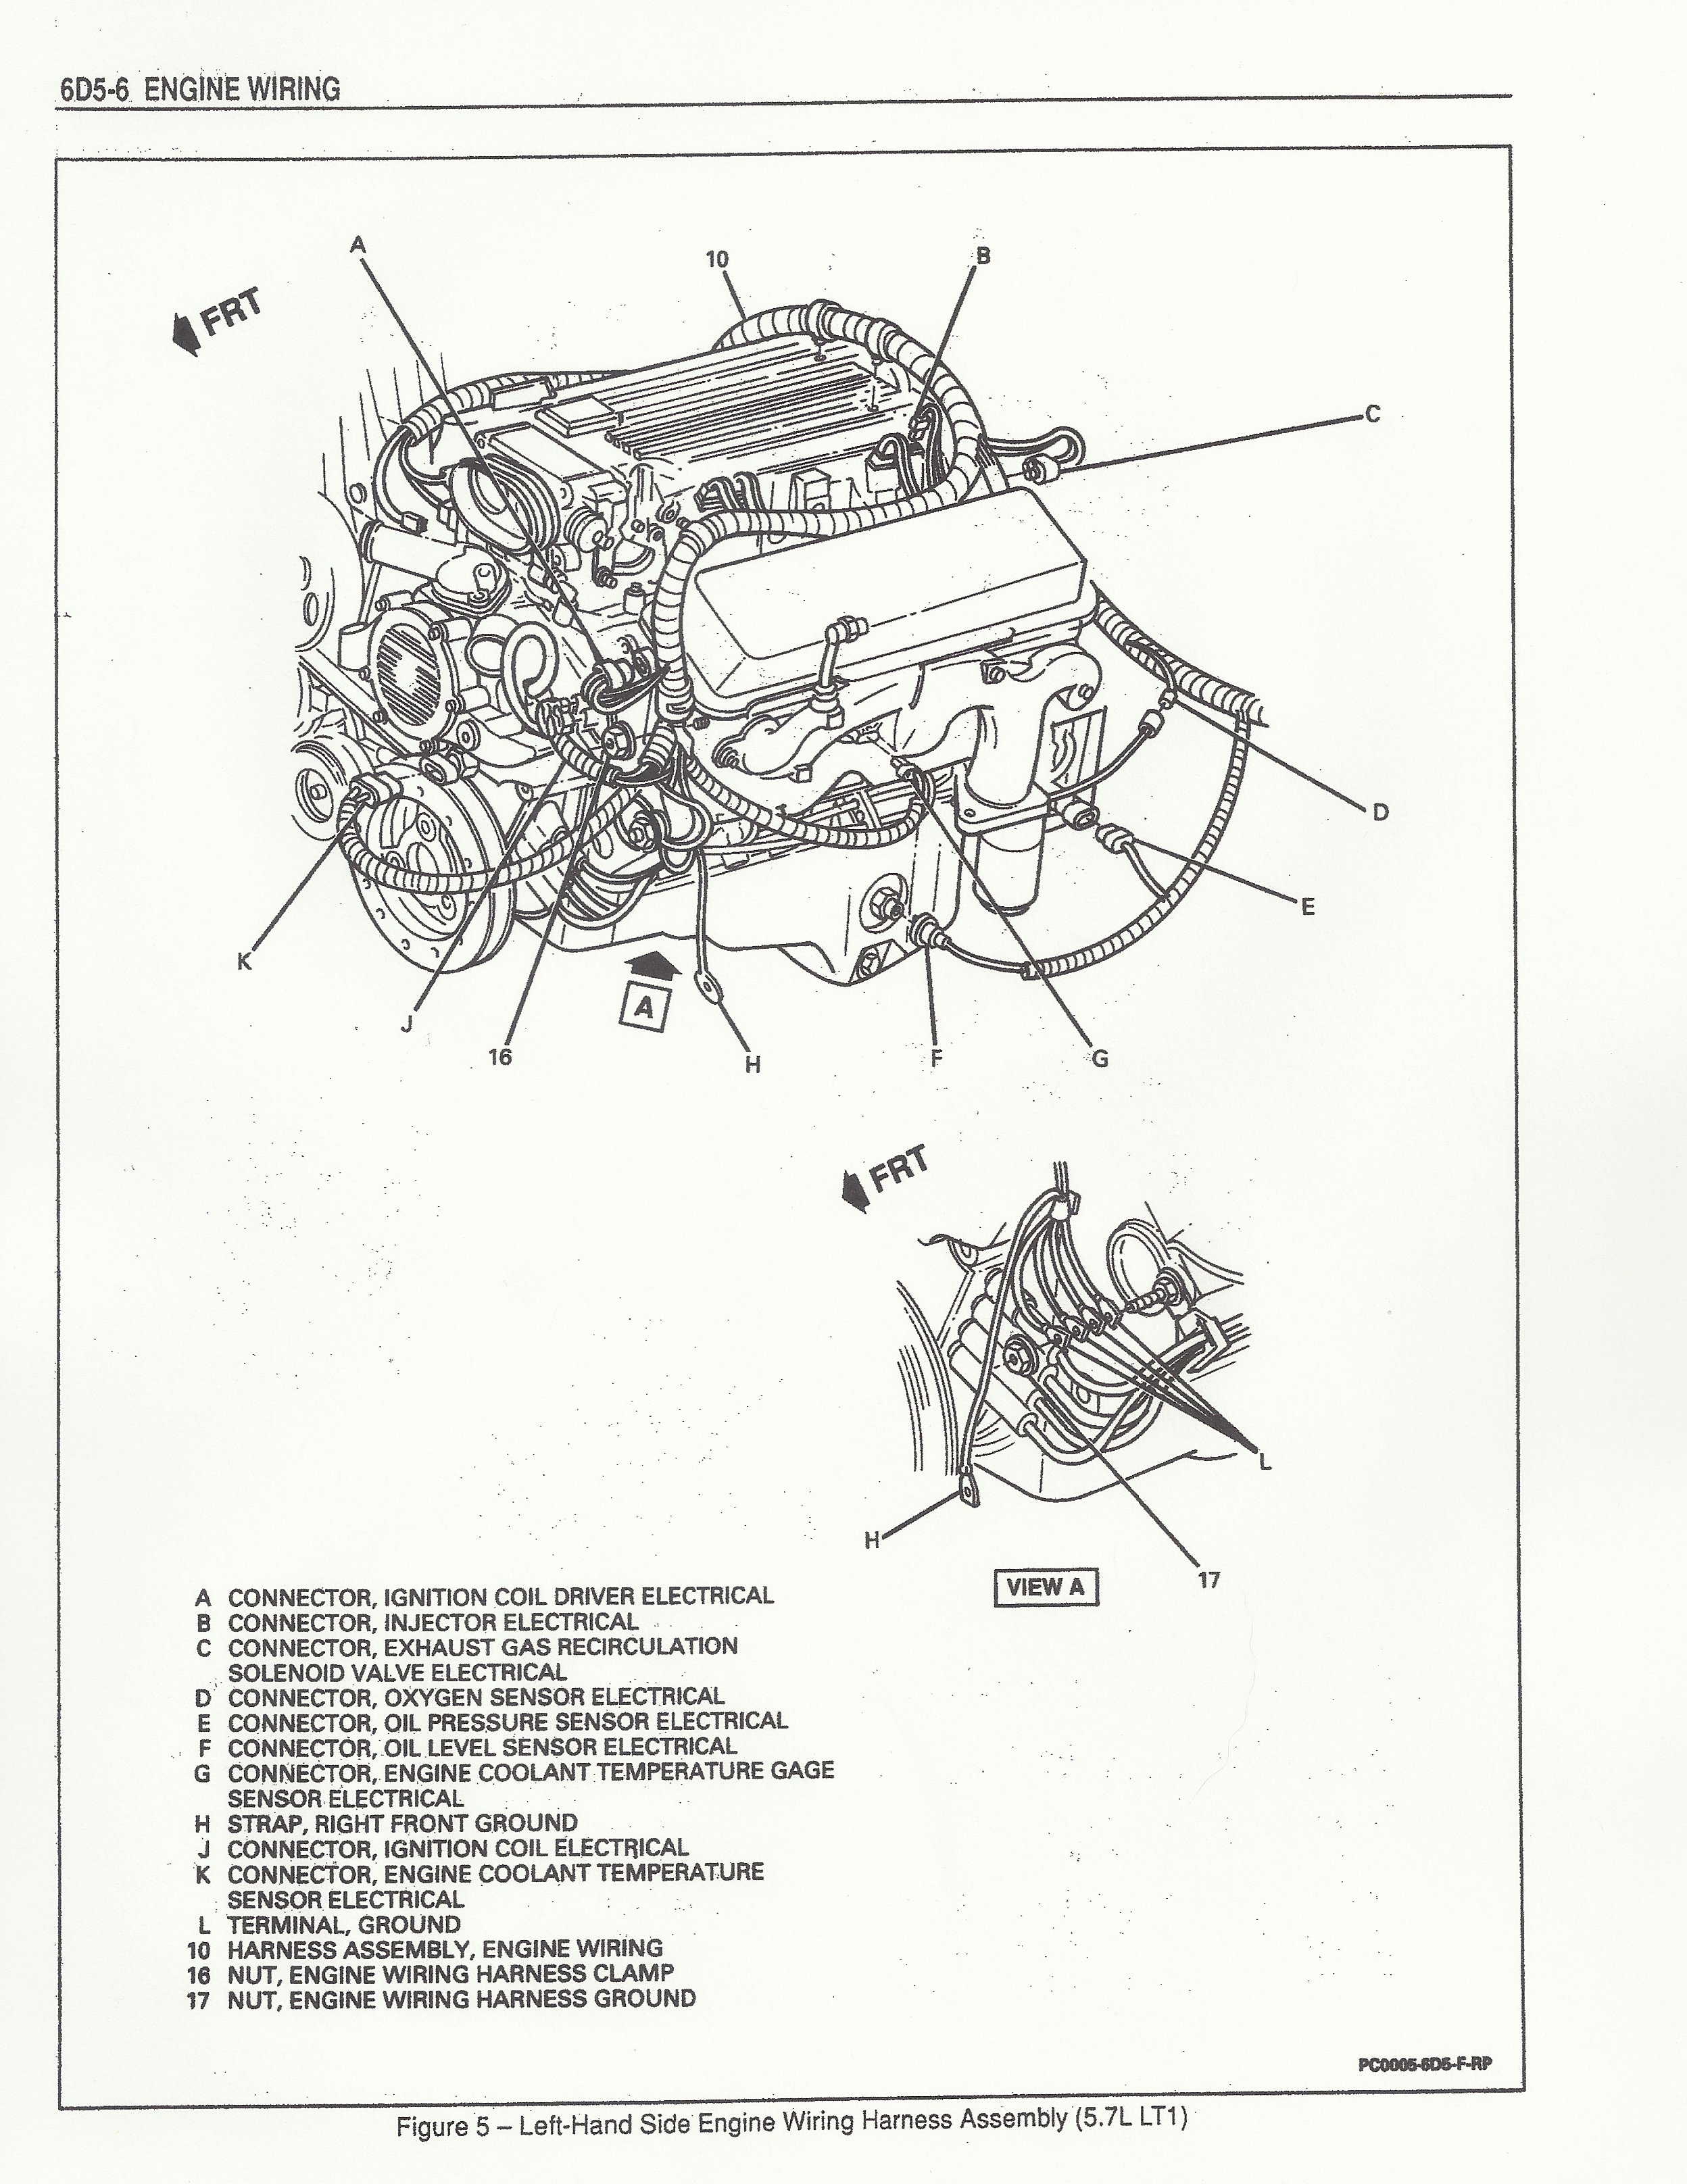 1978 Ford Truck Wiring Diagram 9000 besides Painless Lt1 Wiring Harness additionally Toyota Alternator Wiring Diagram Pdf besides Starting And Charging System Wiring Diagram as well Lt1 Wiring Harness. on question alternator not charging wiring ls1lt1 forum lt1